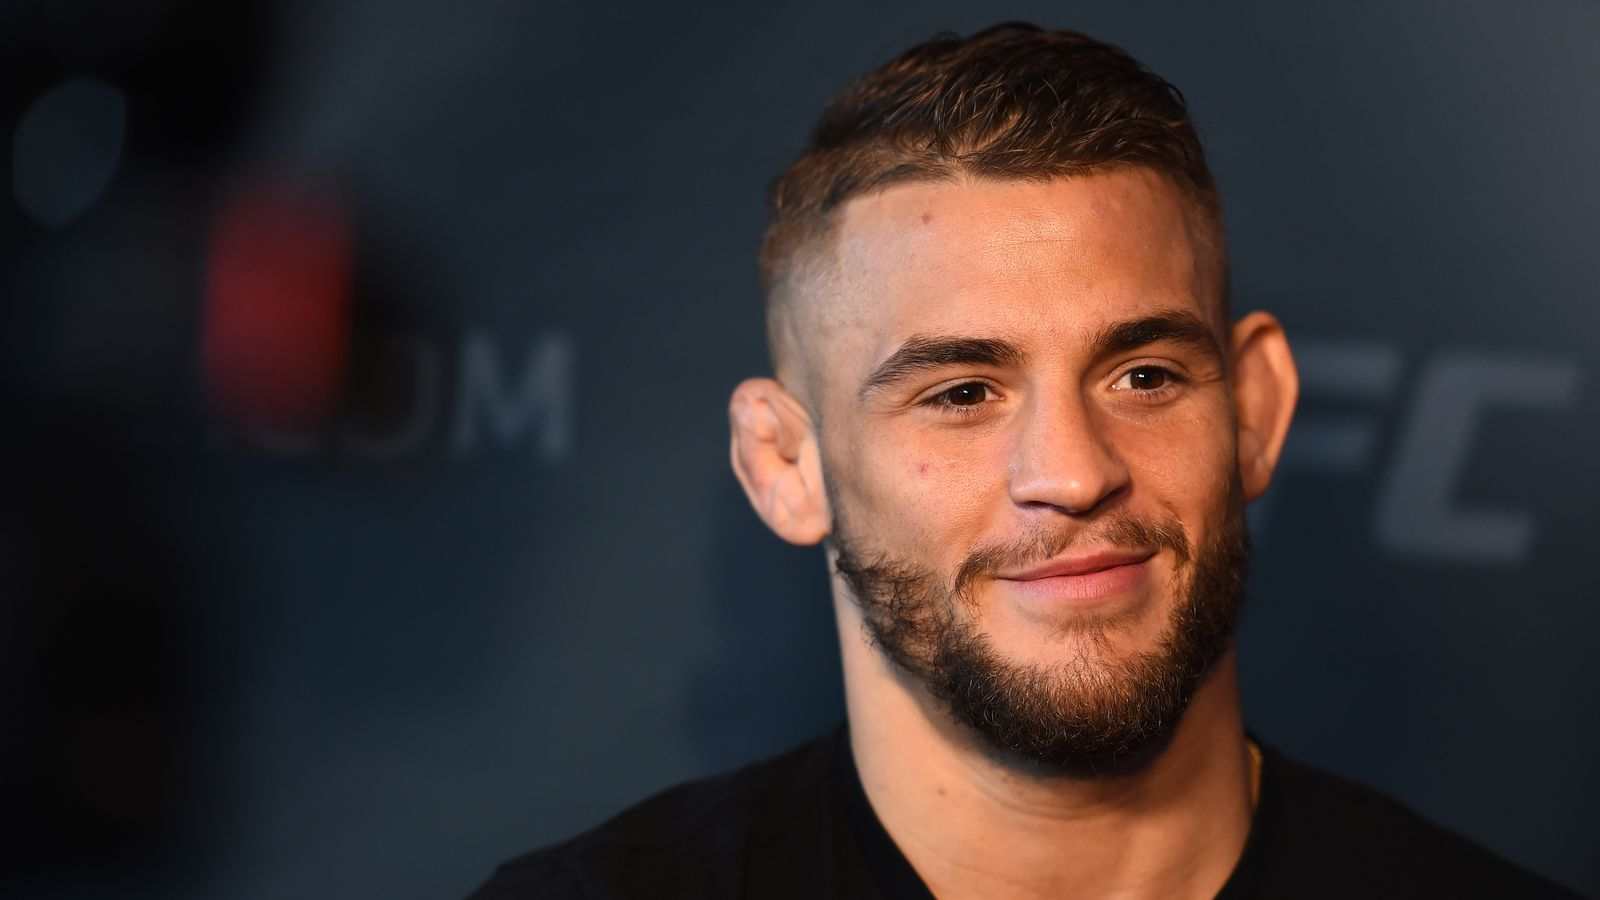 BROOKLYN, NY - FEBRUARY 08: Dustin Poirier interacts with the media during the UFC 208 Ultimate Media Day at the Barclays Center on February 8, 2017 in Brooklyn, New York. (Photo by Jeff Bottari/Zuffa LLC/Zuffa LLC via Getty Images)